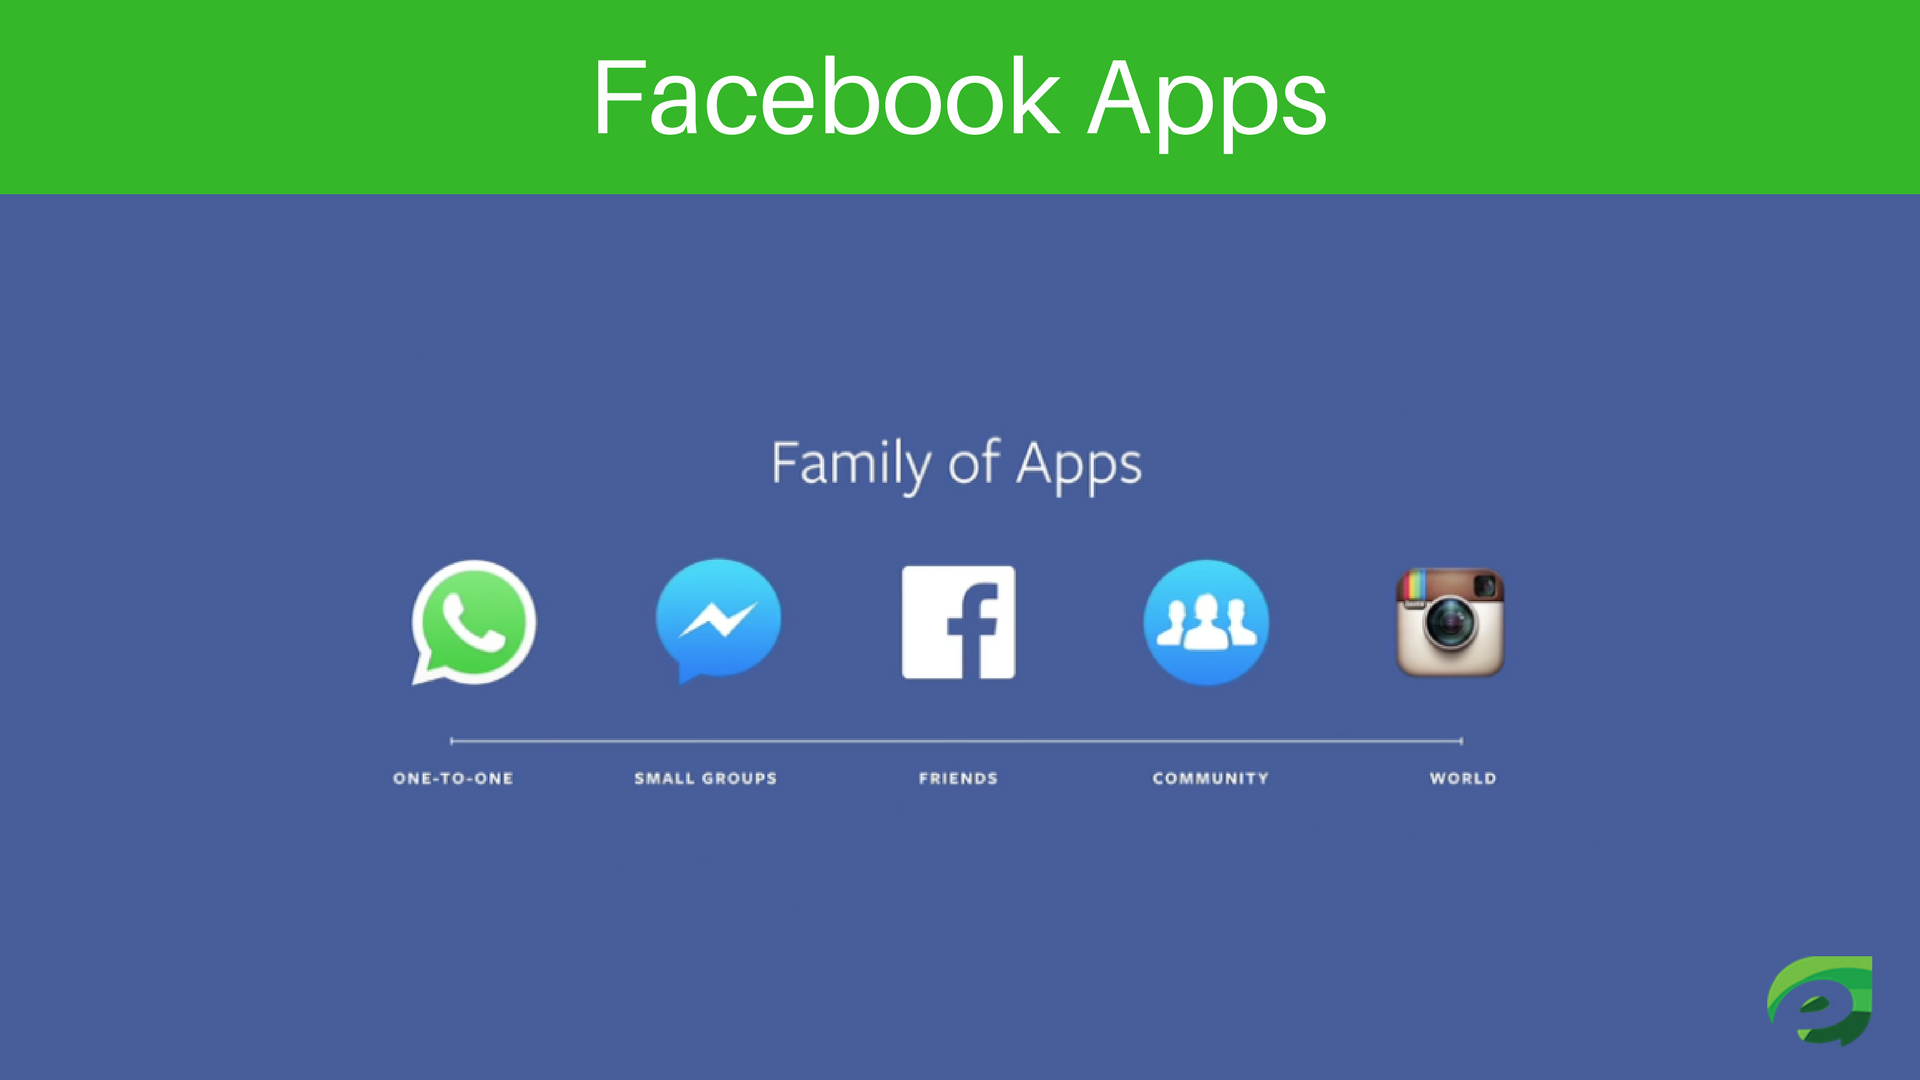 Facebook Apps - How Facebook Works